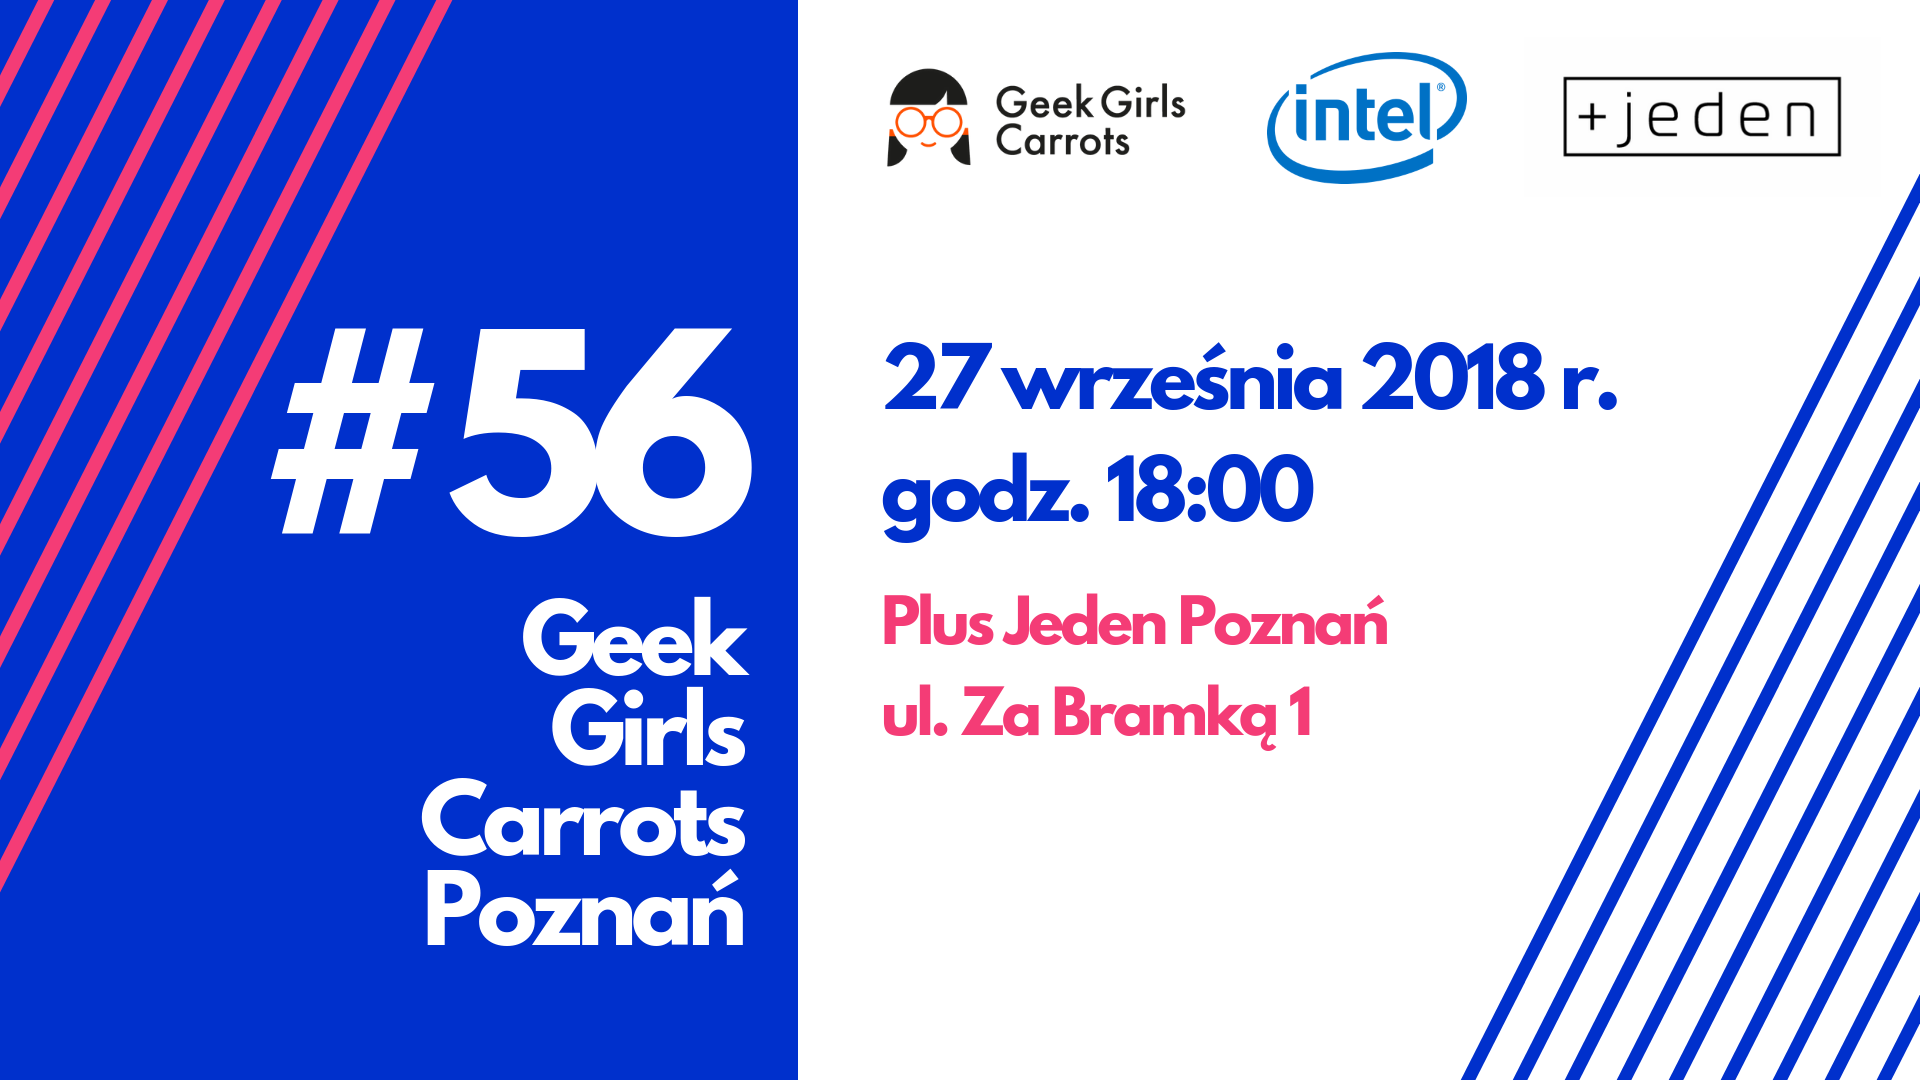 geek-girls-carrots-poznan-56